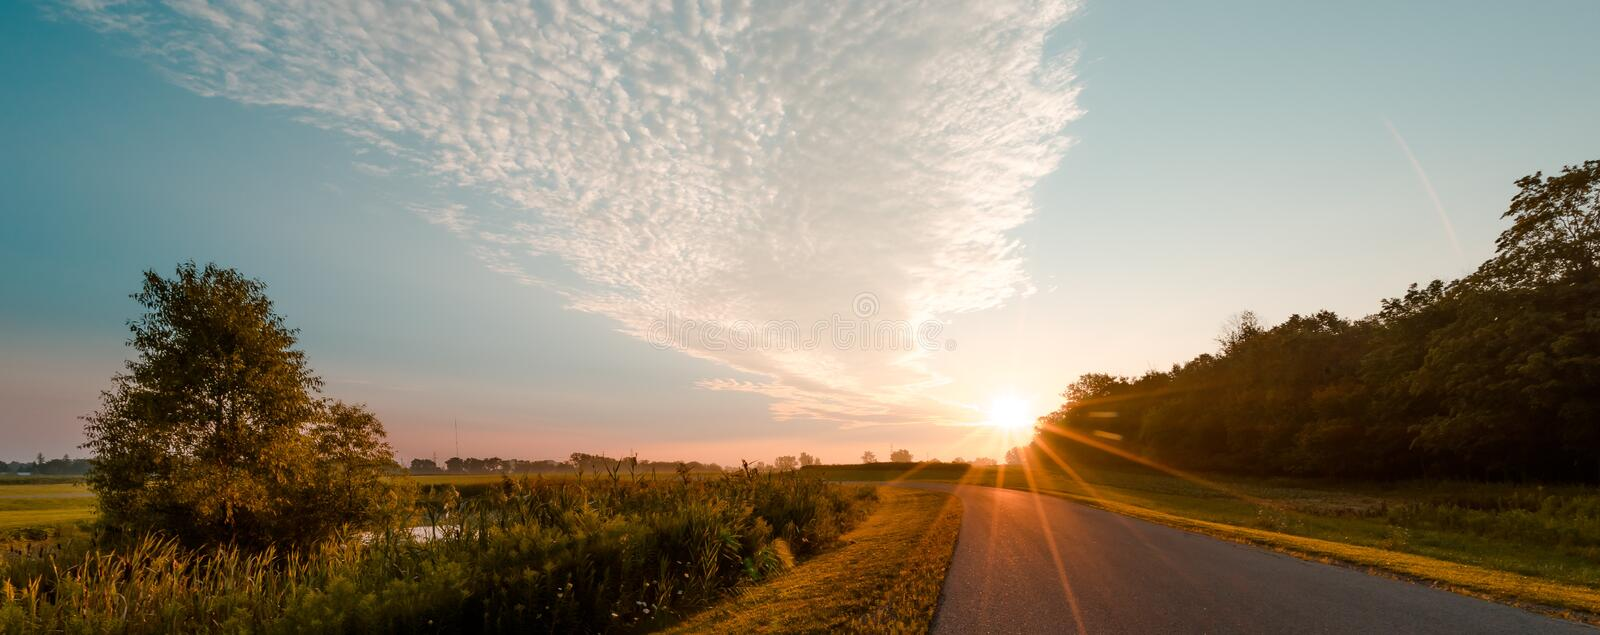 Photo of Road during Sunrise stock images